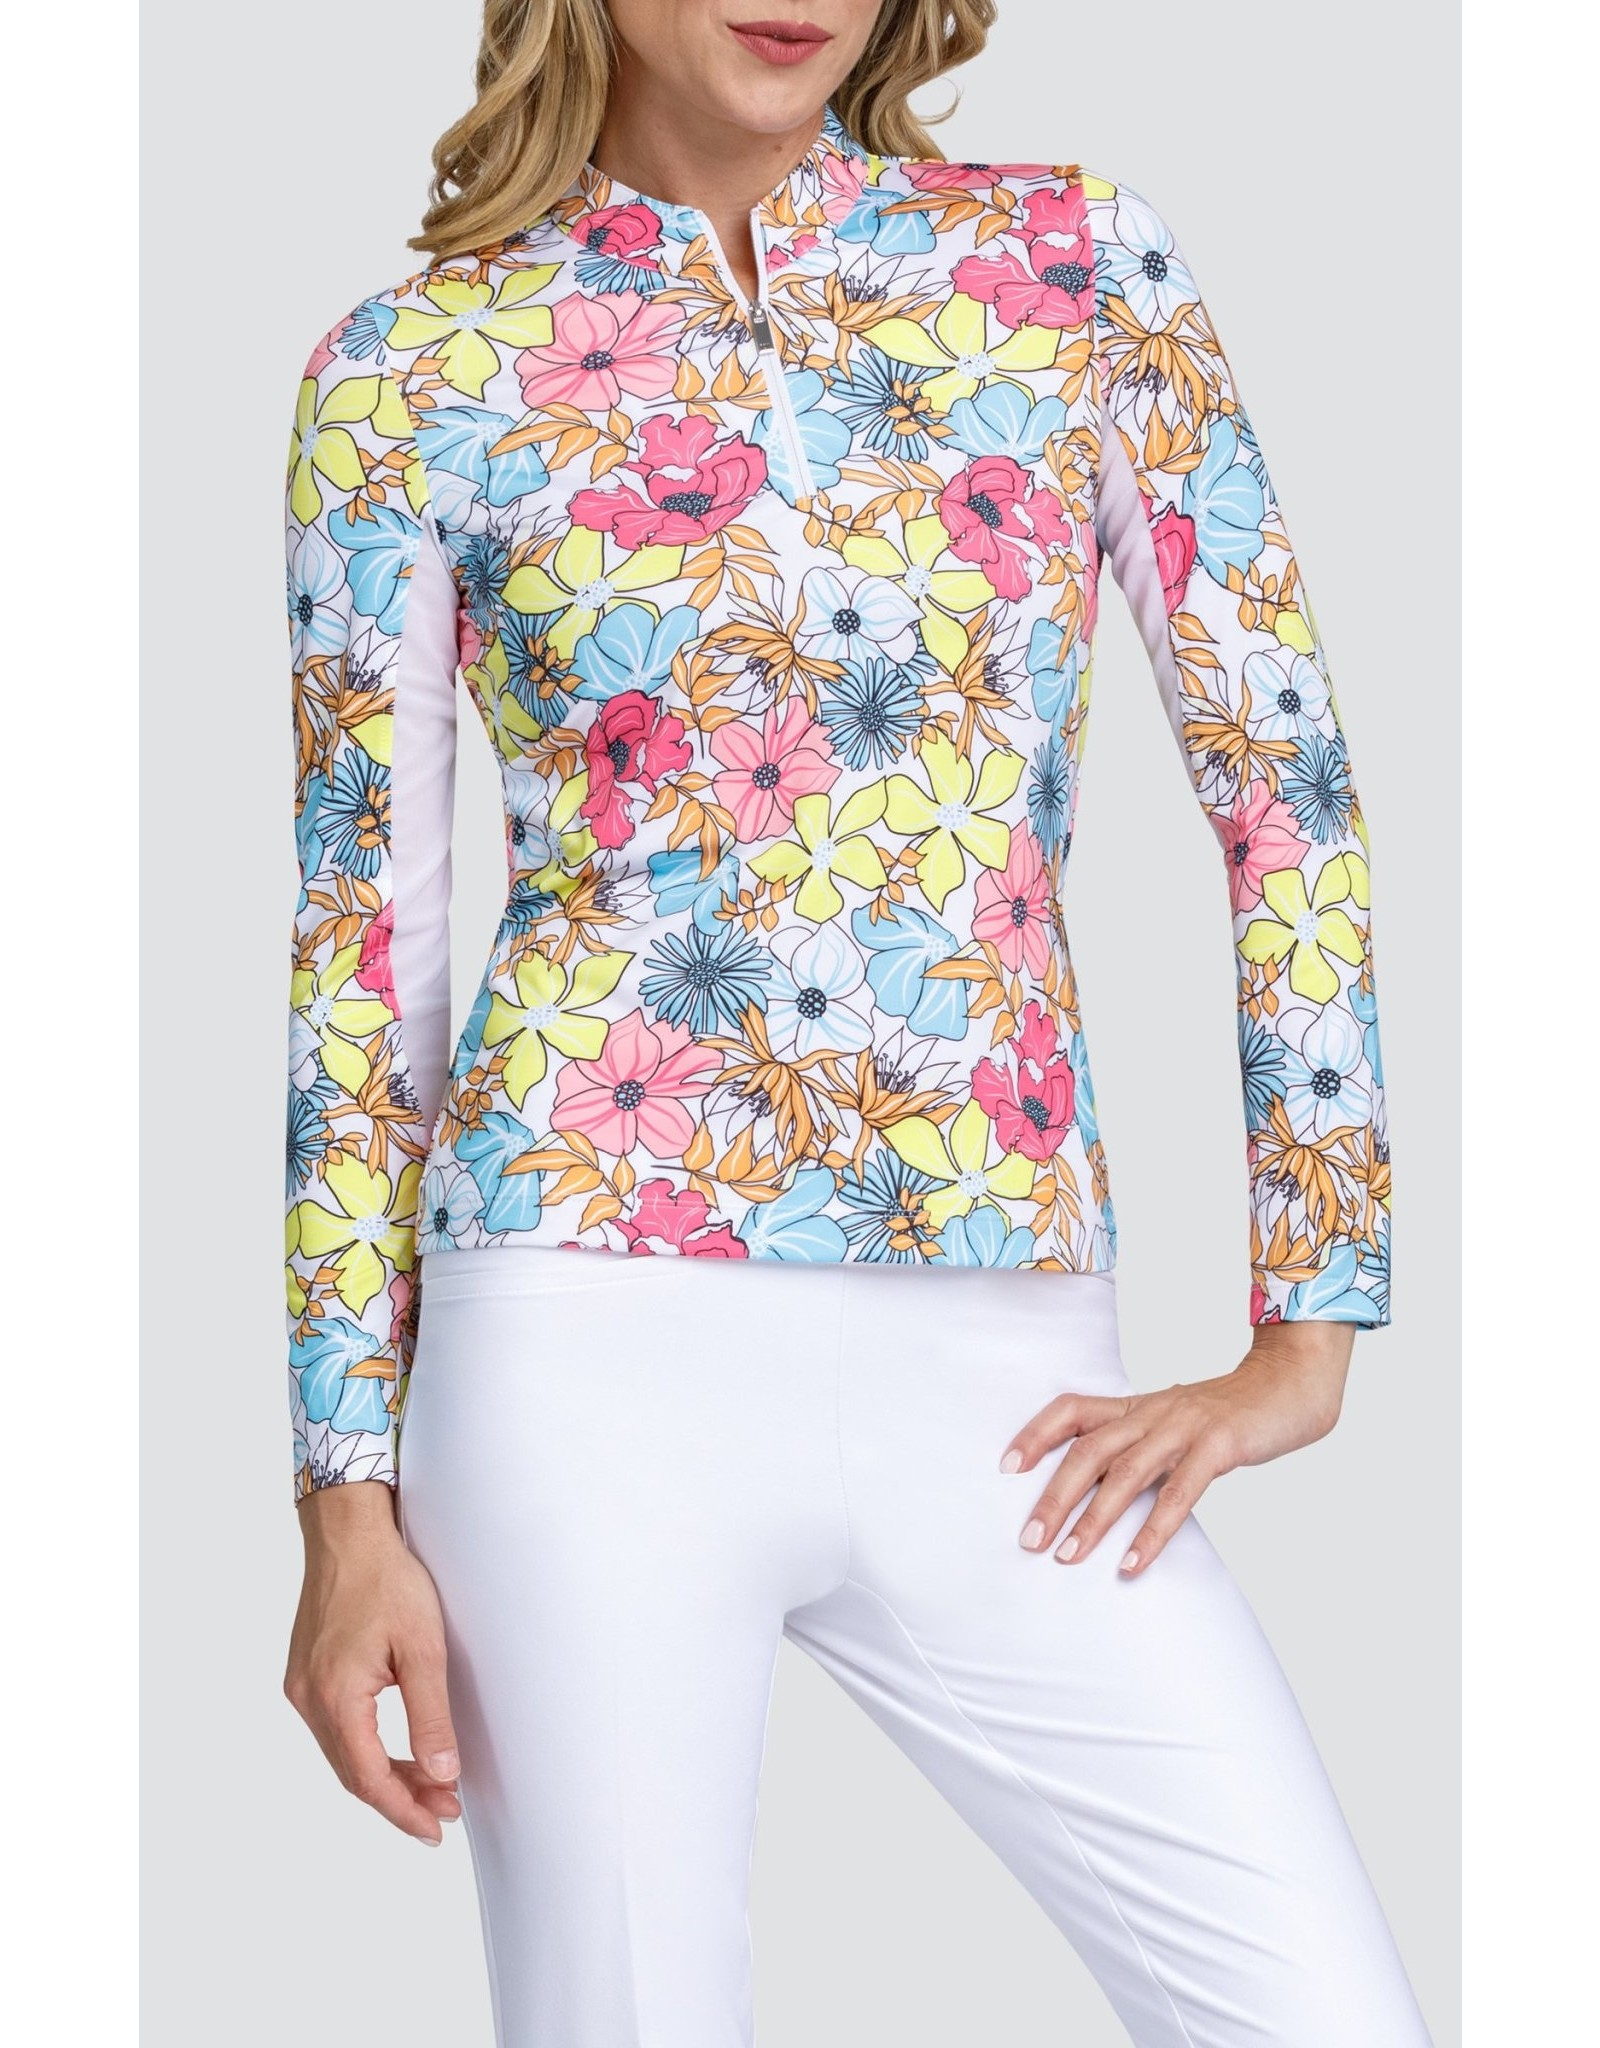 Tail Joy Top - Sunset Blooms L